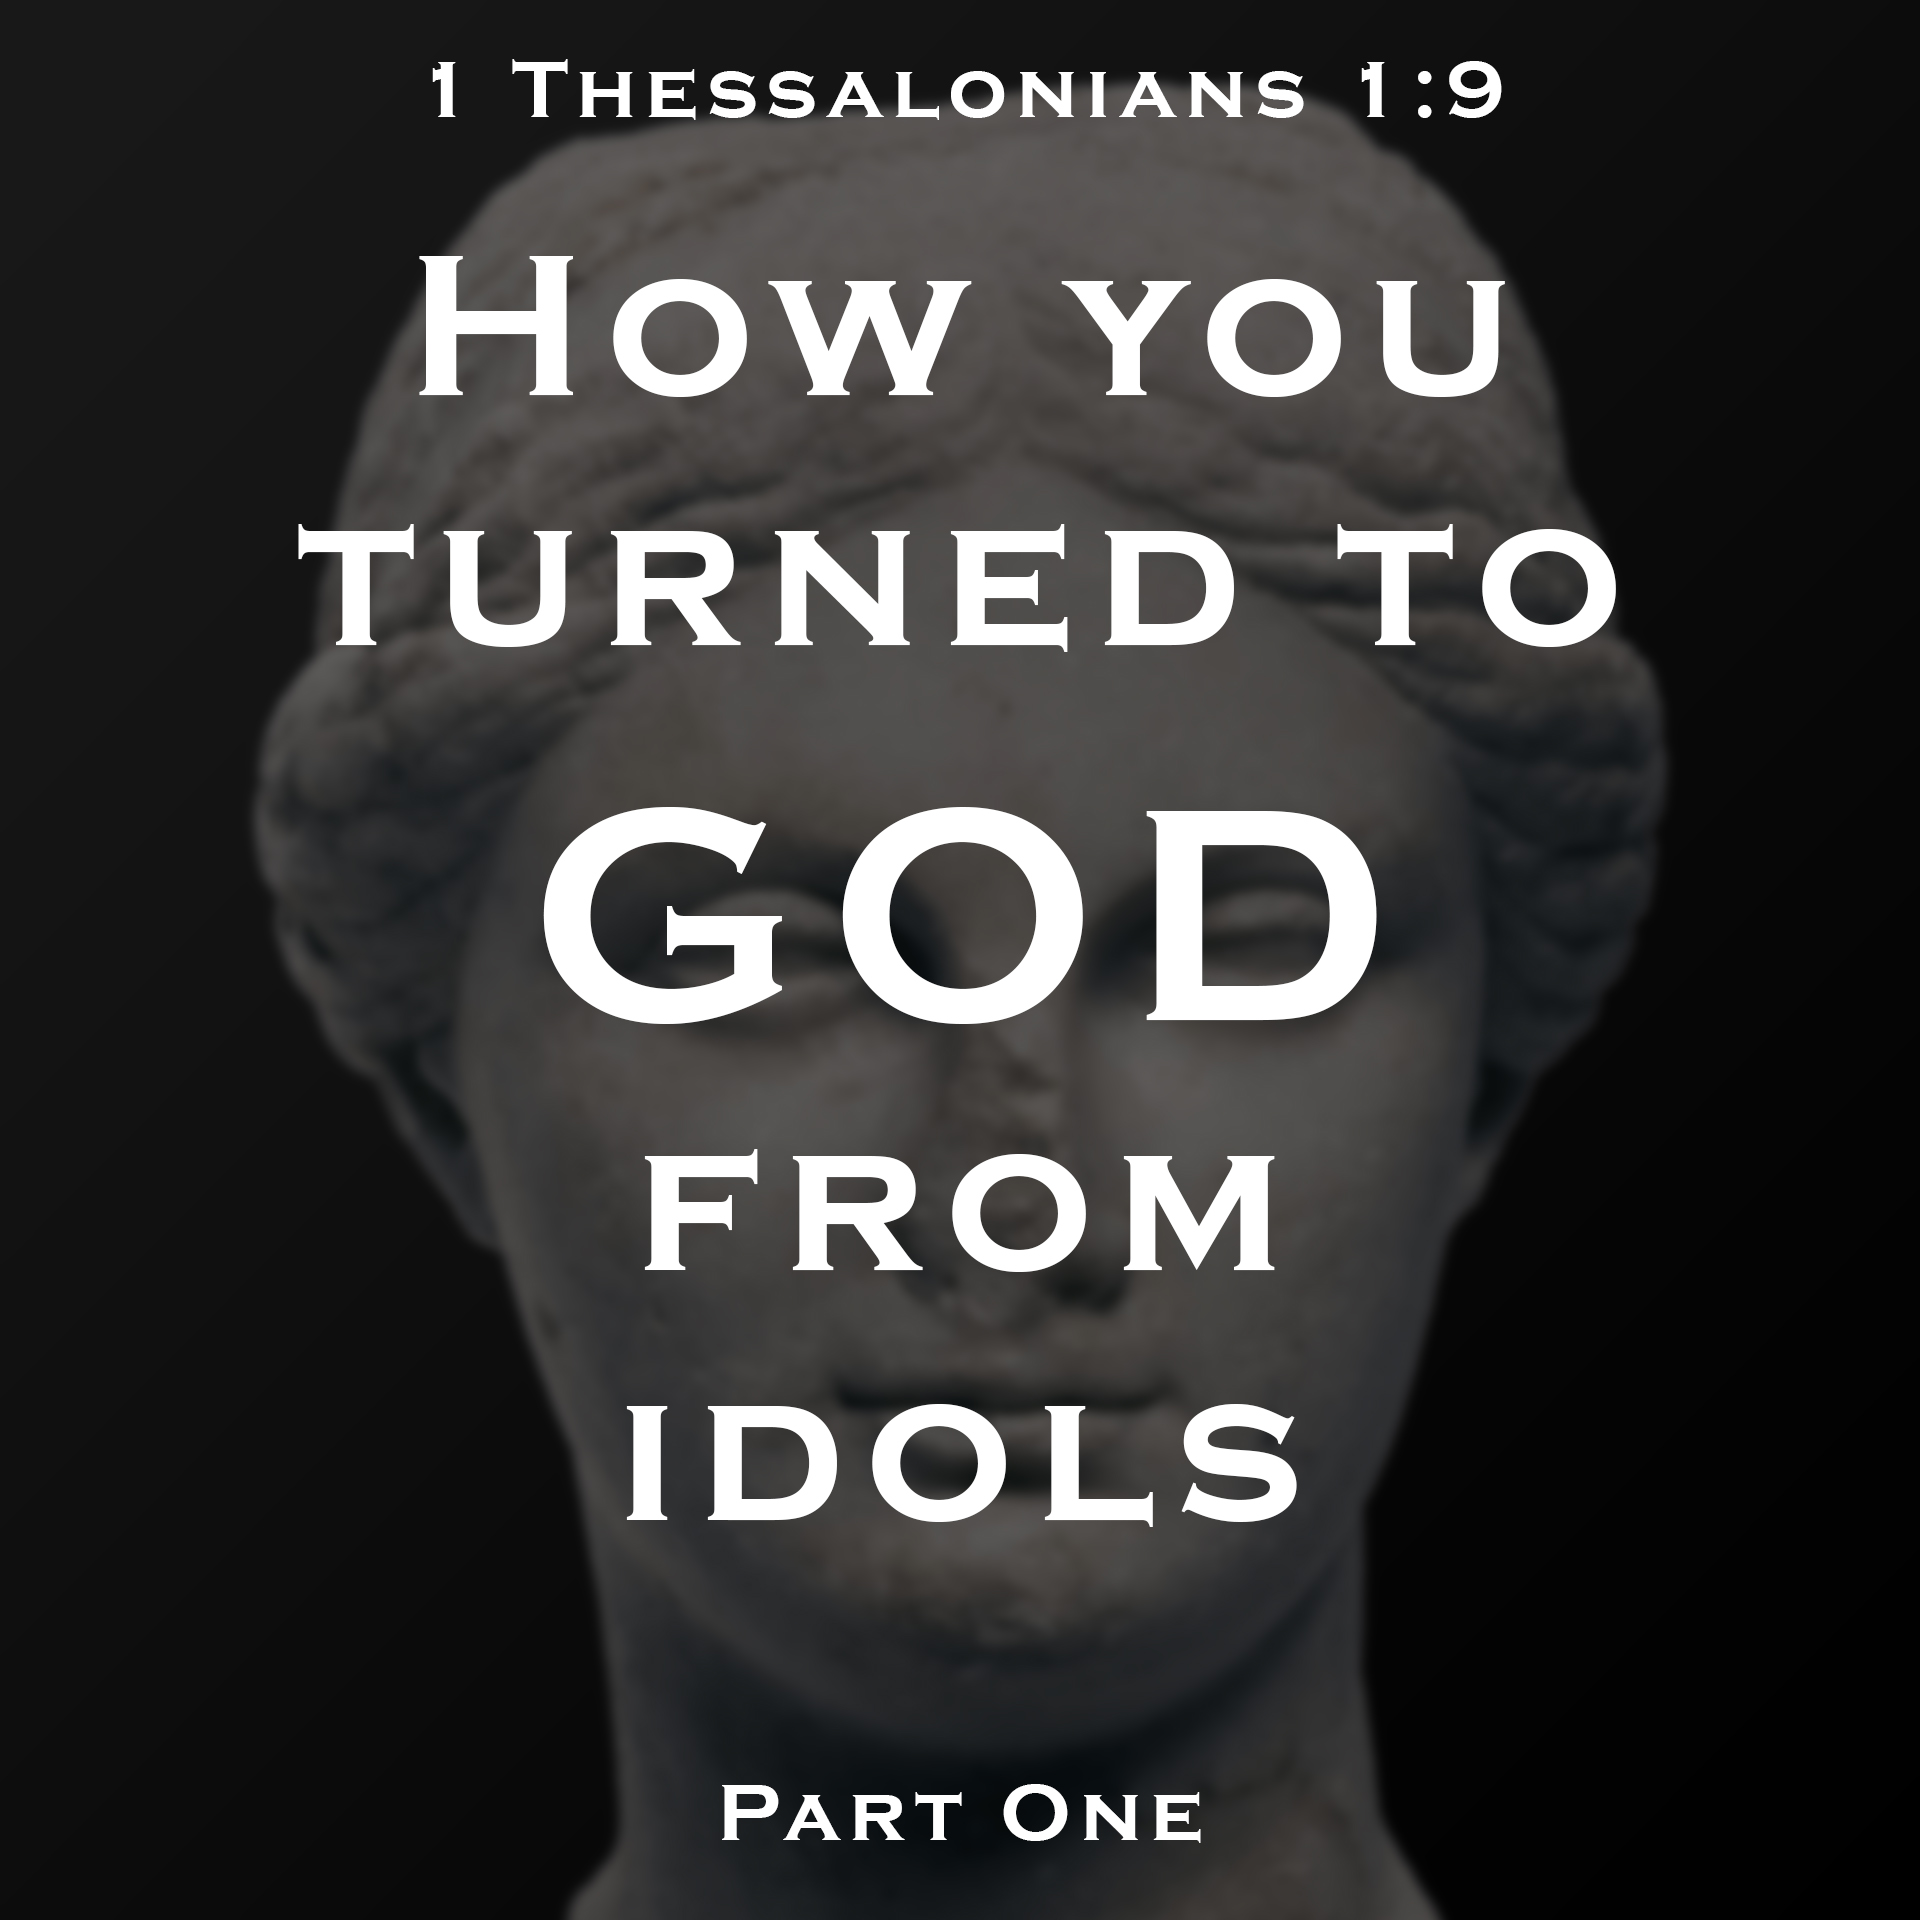 How You Turned to God From Idols : Part 1